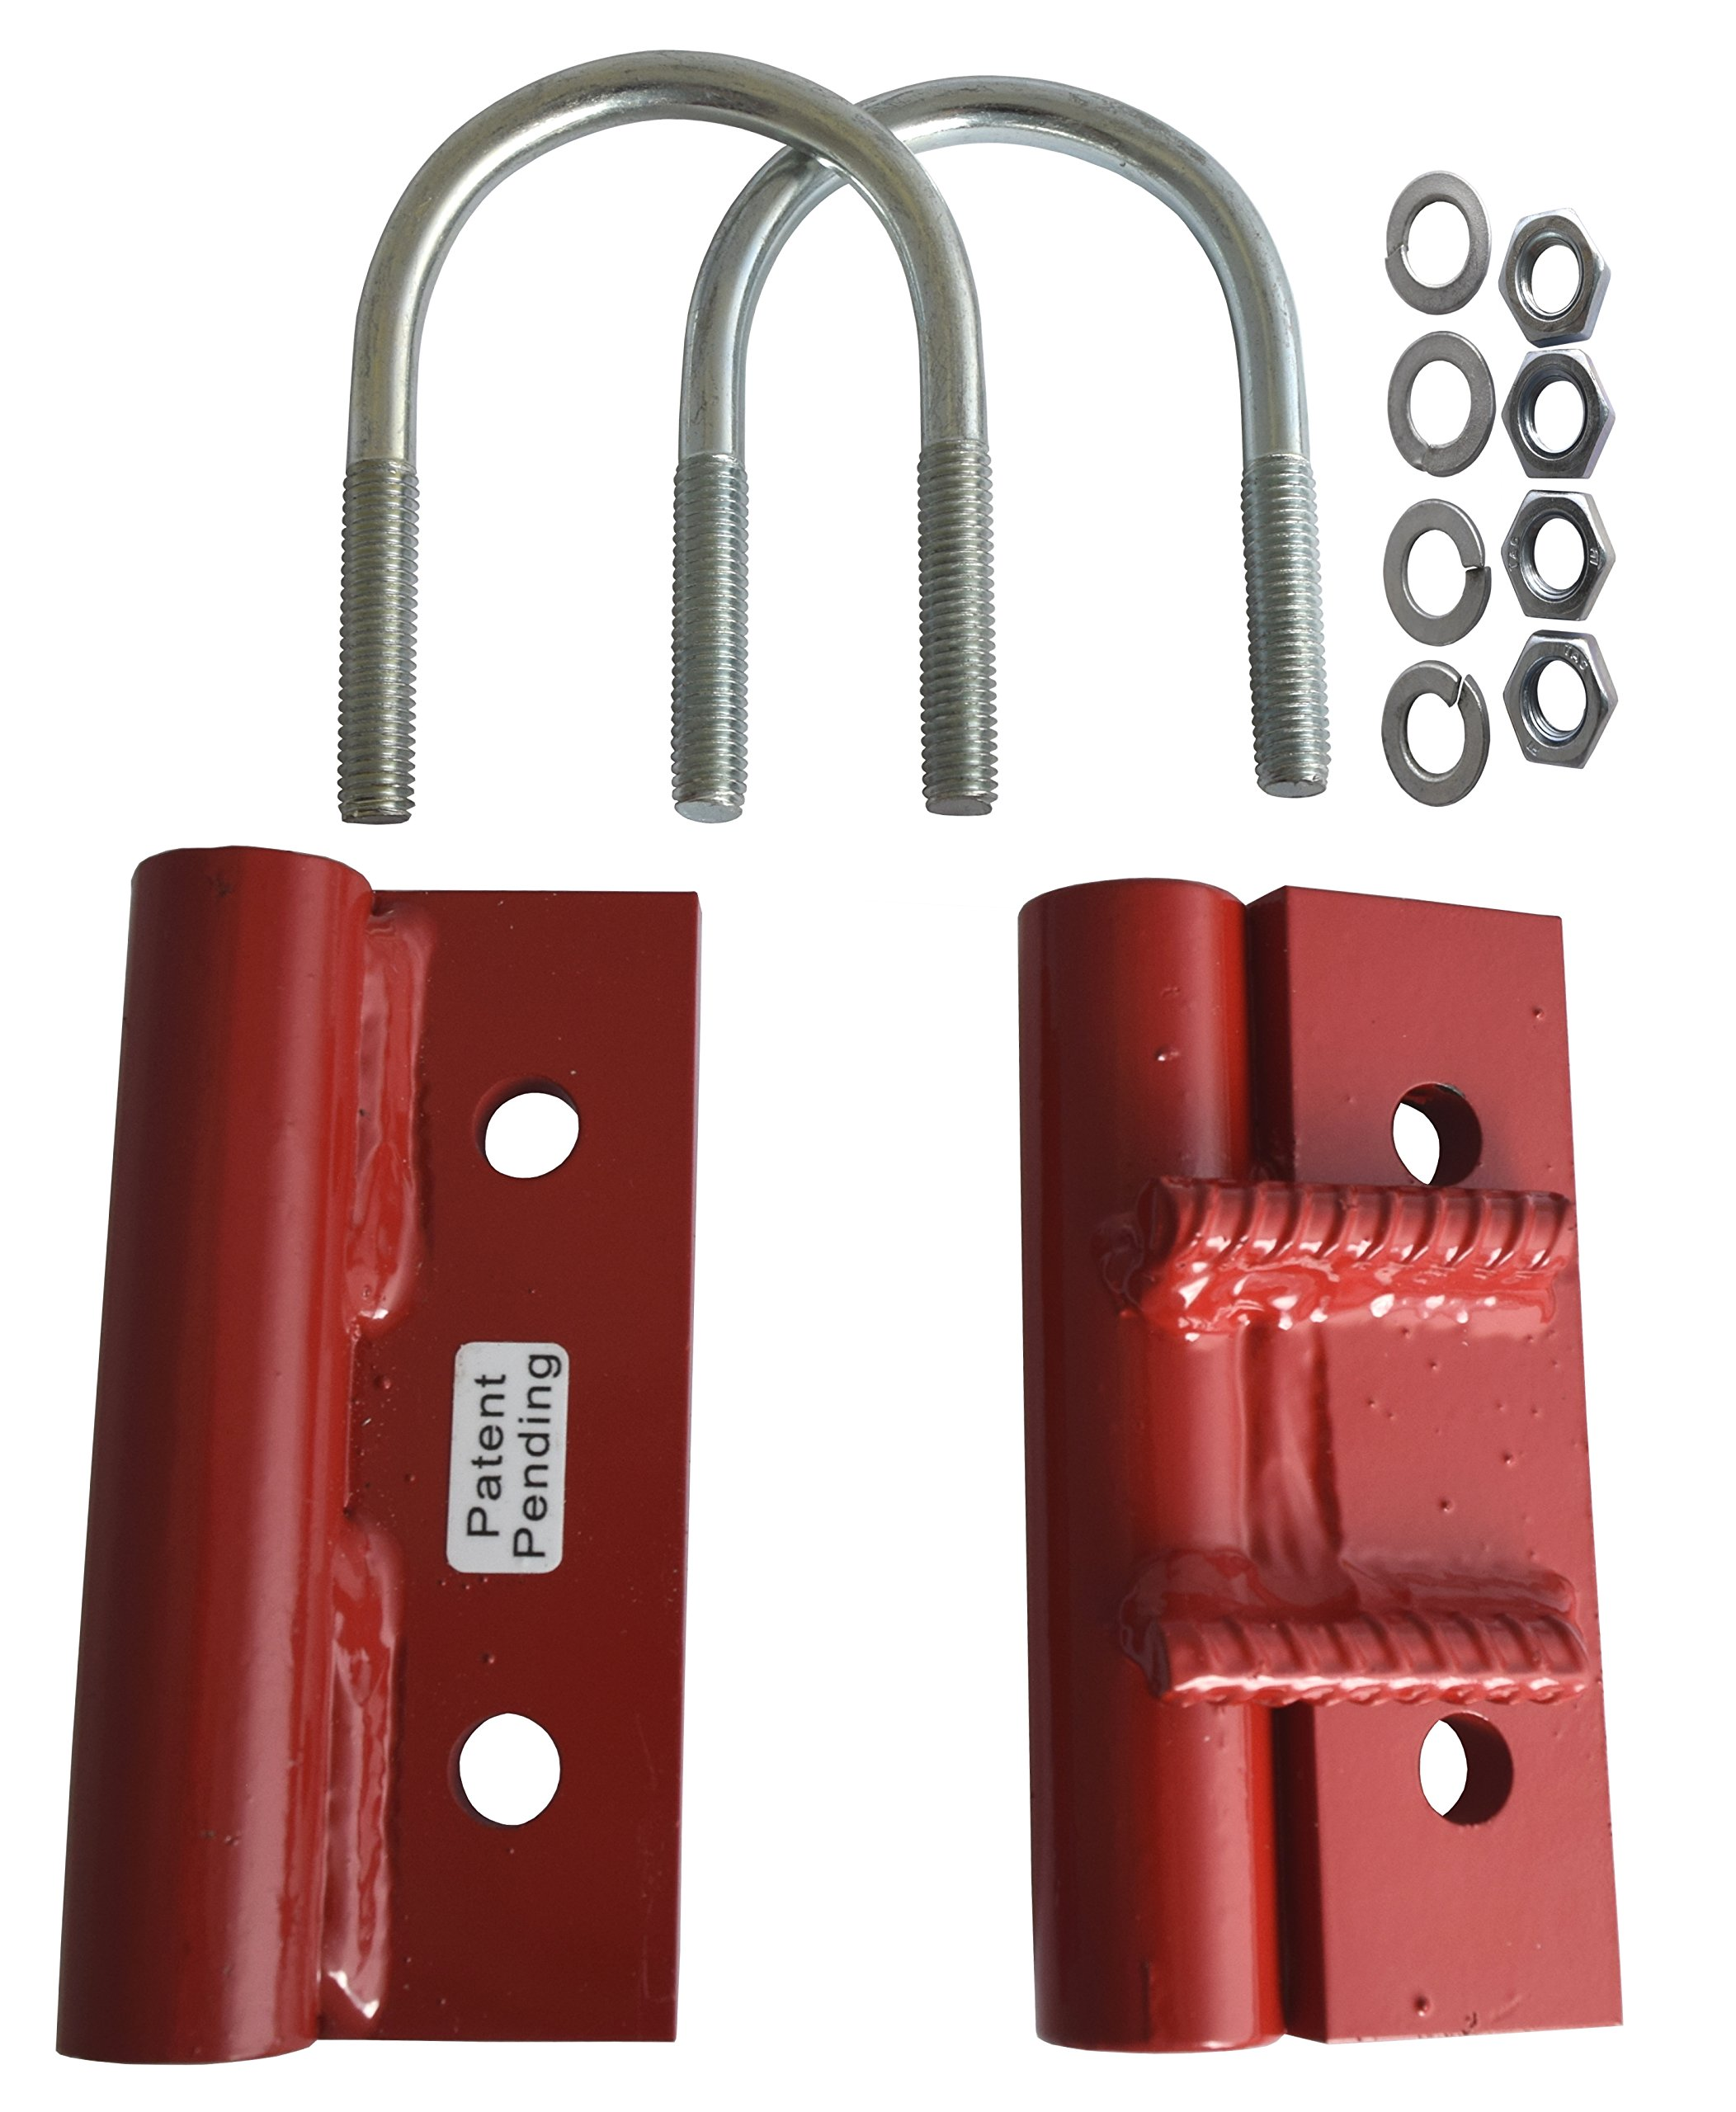 EZ-Hinge - Farm Gate Hinges, 2.5'' Outer Diameter, No Drill, No Weld - 1 Pair